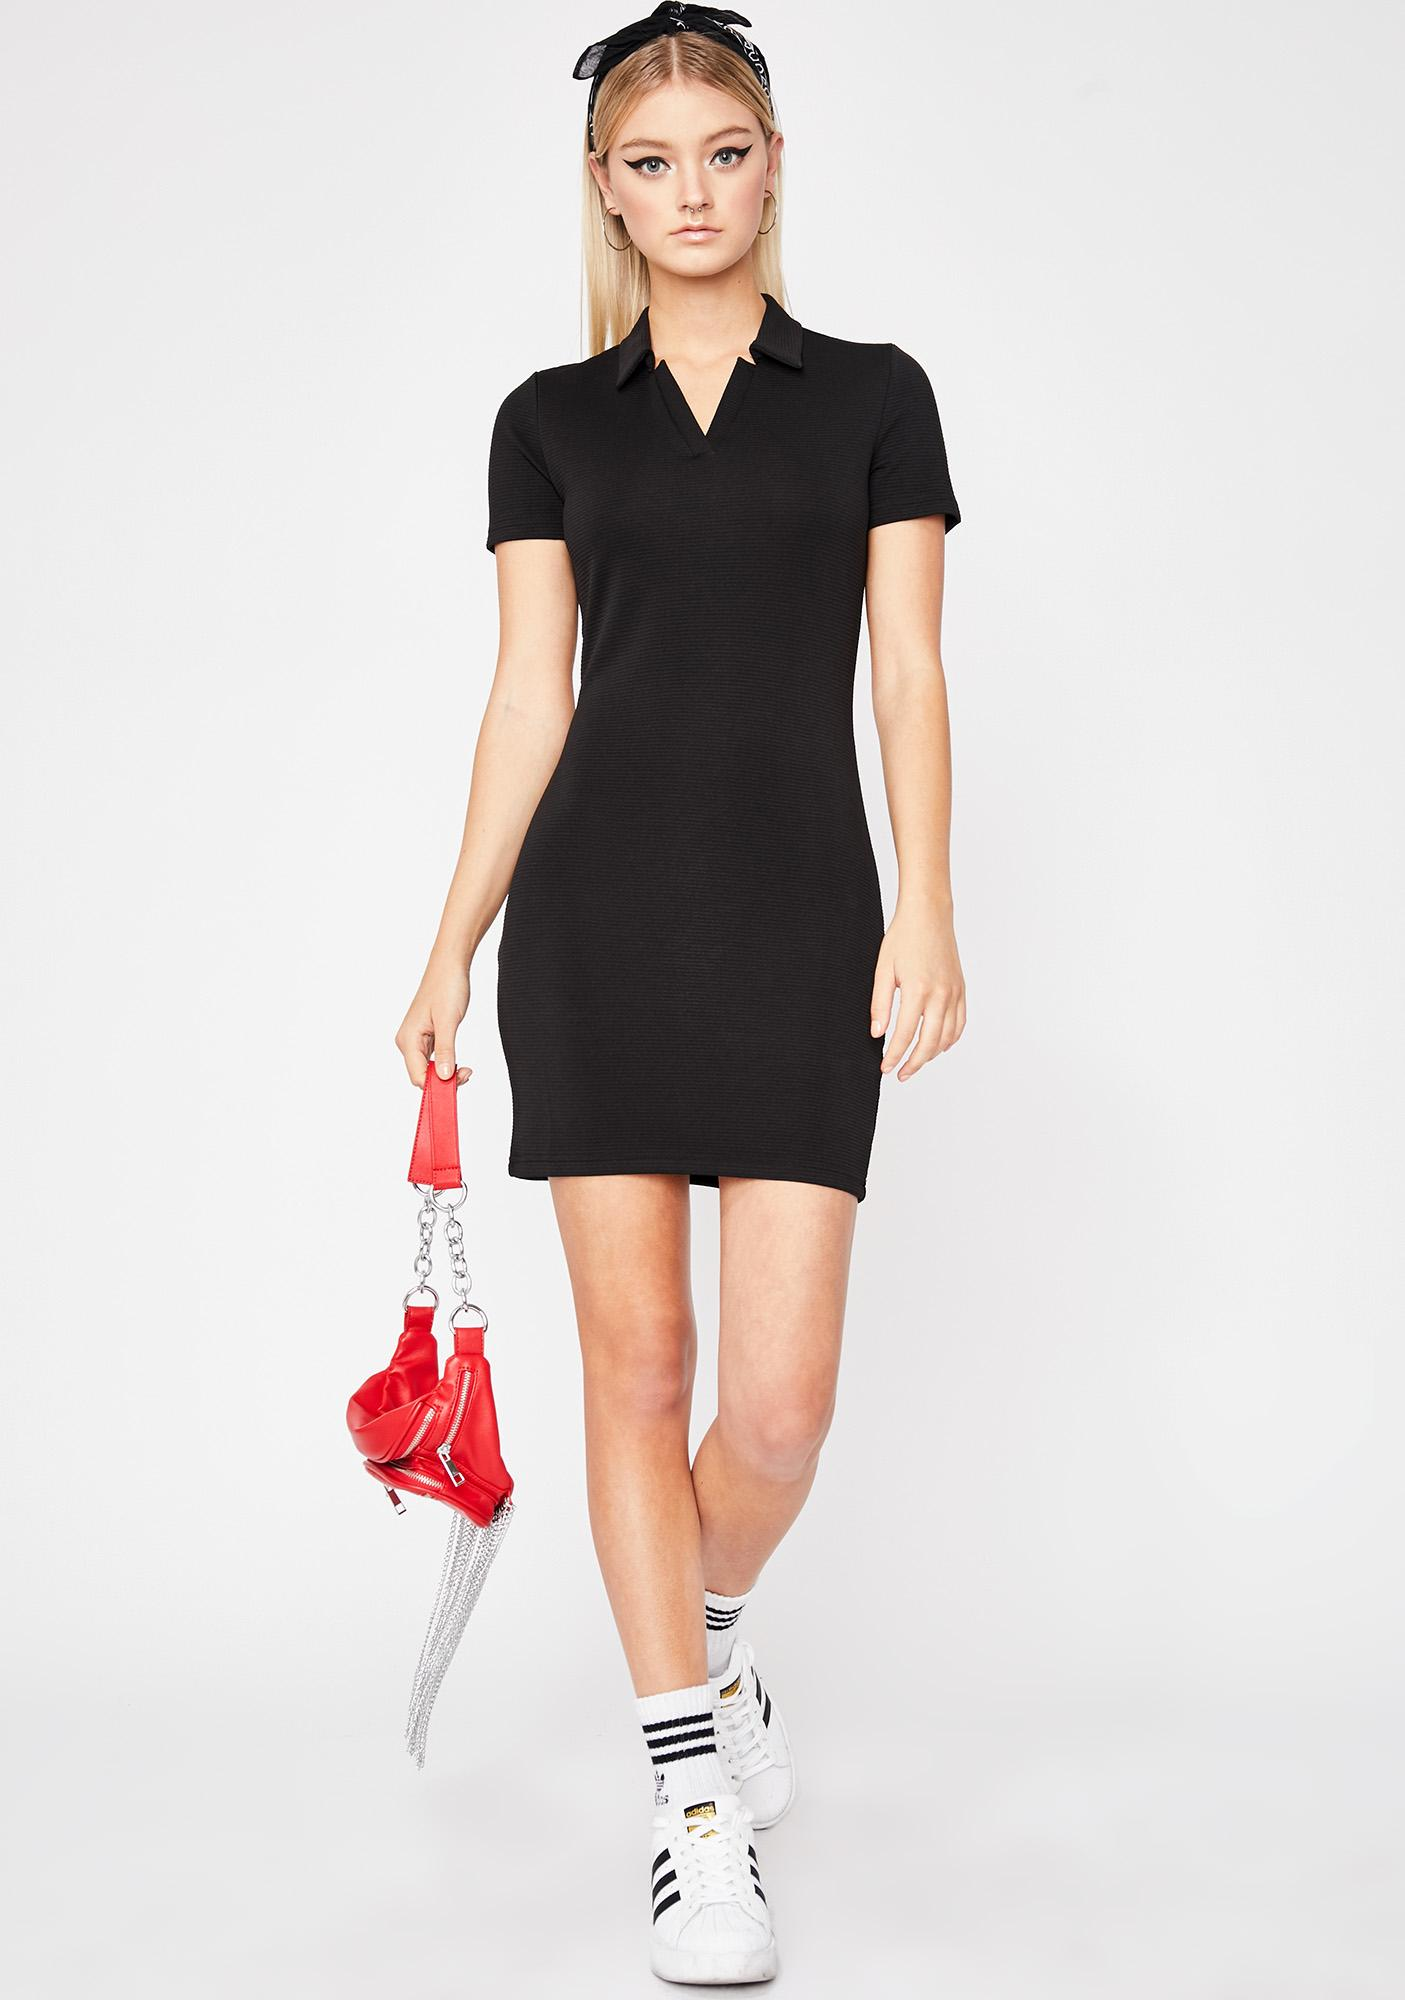 Ink Not Regular Polo Dress